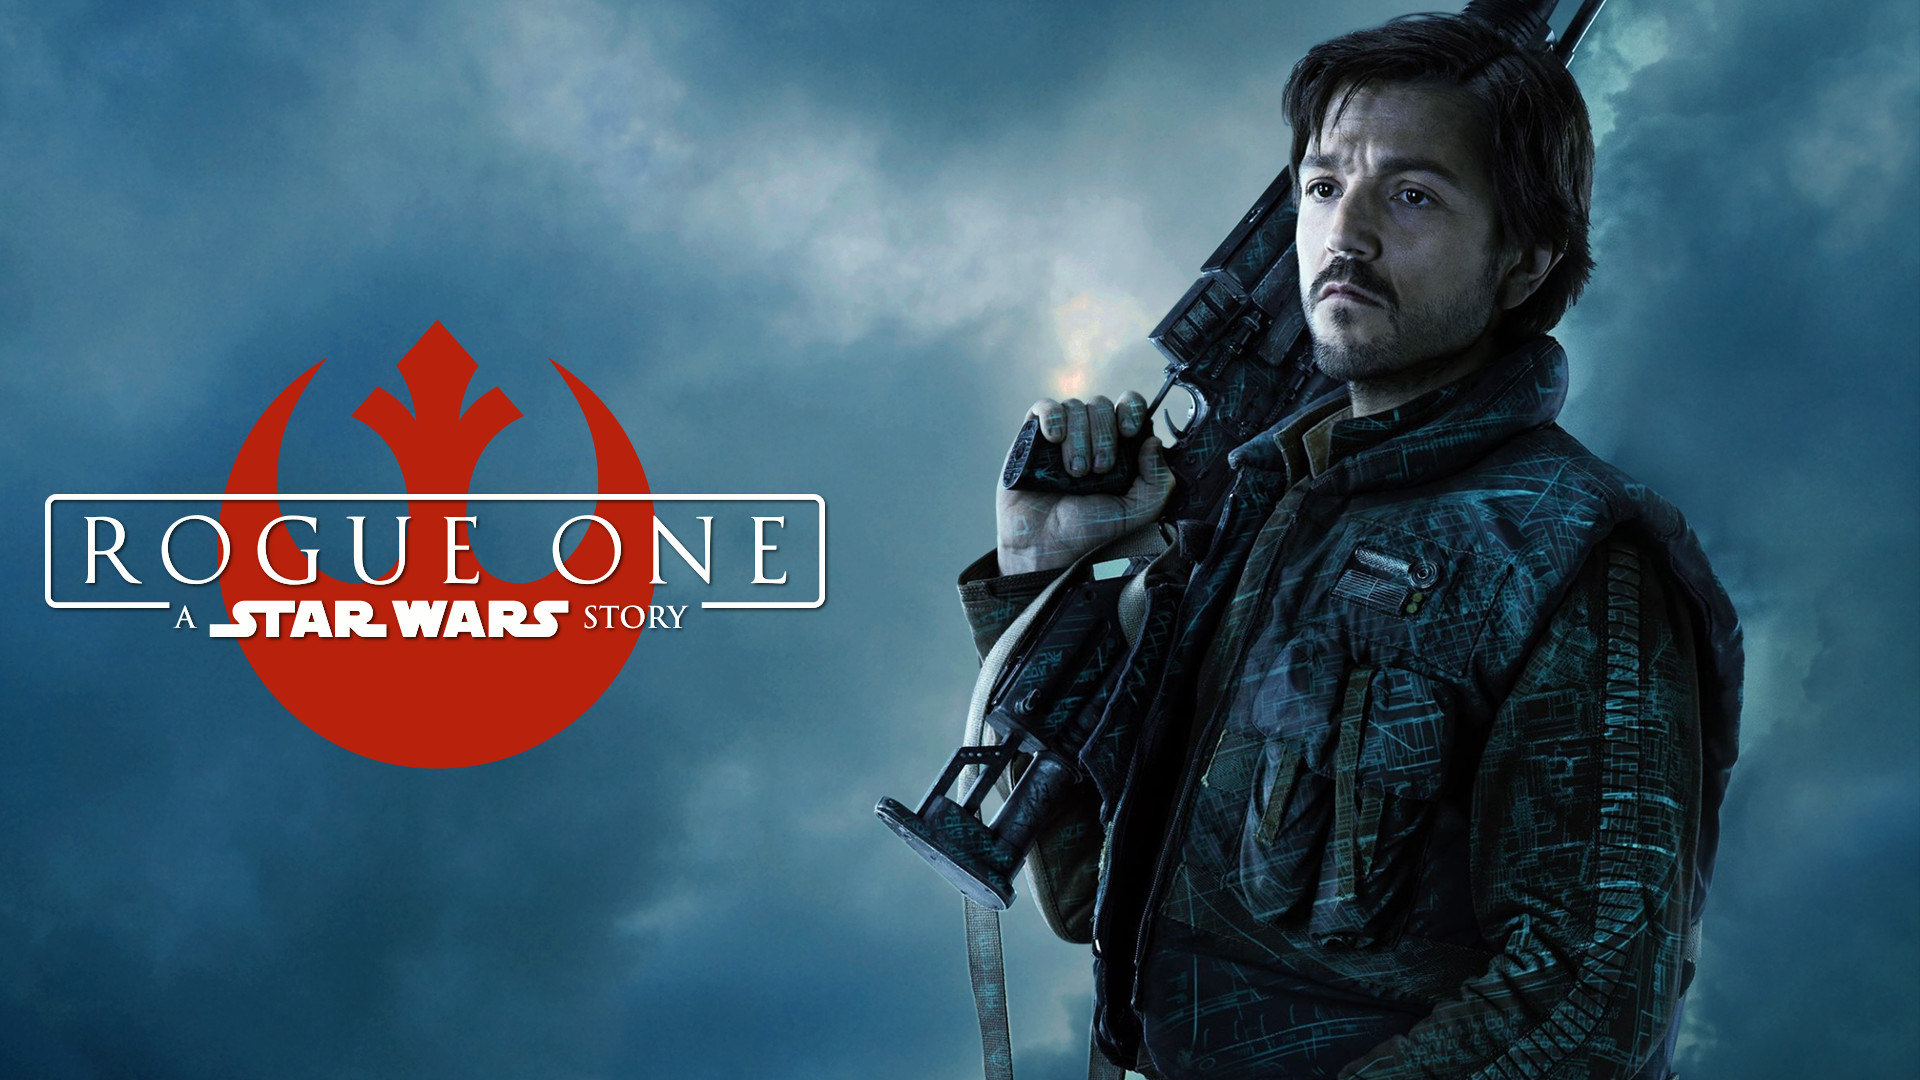 1920x1080 Rogue One Wallpaper (Cassian Andor 2) by Spirit--Of-Adventure